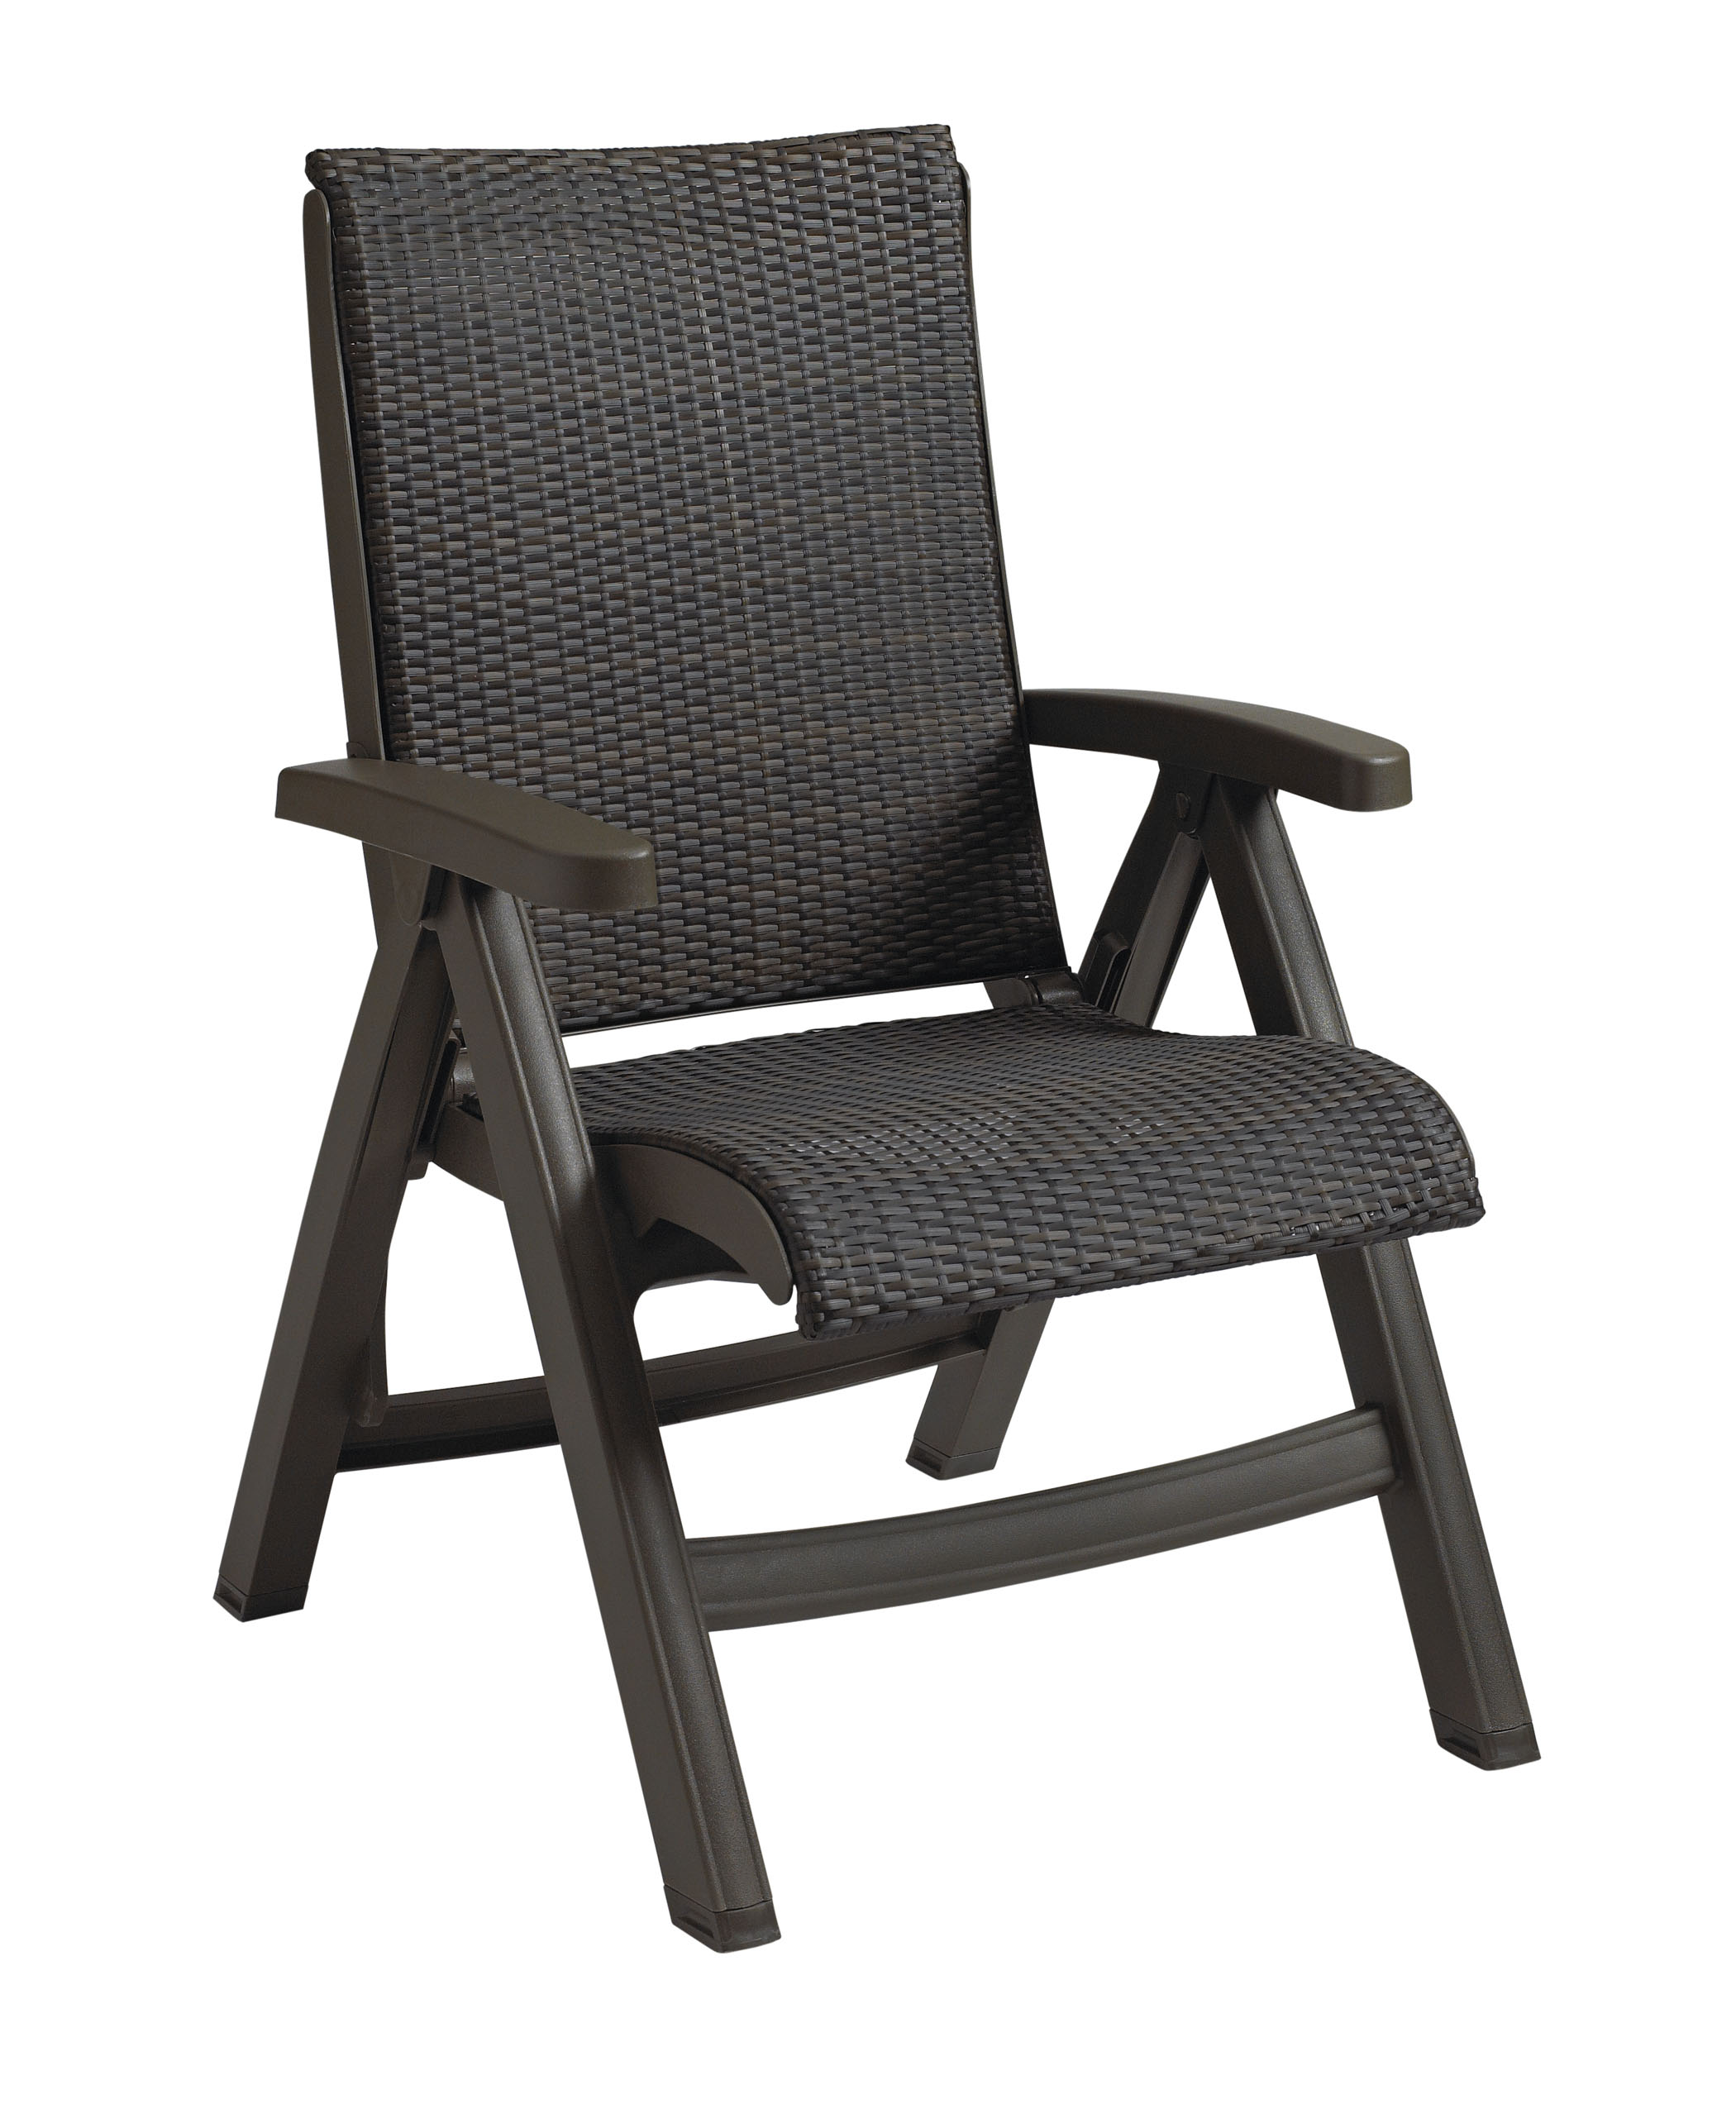 Java All Weather Wicker Resin Folding Chair